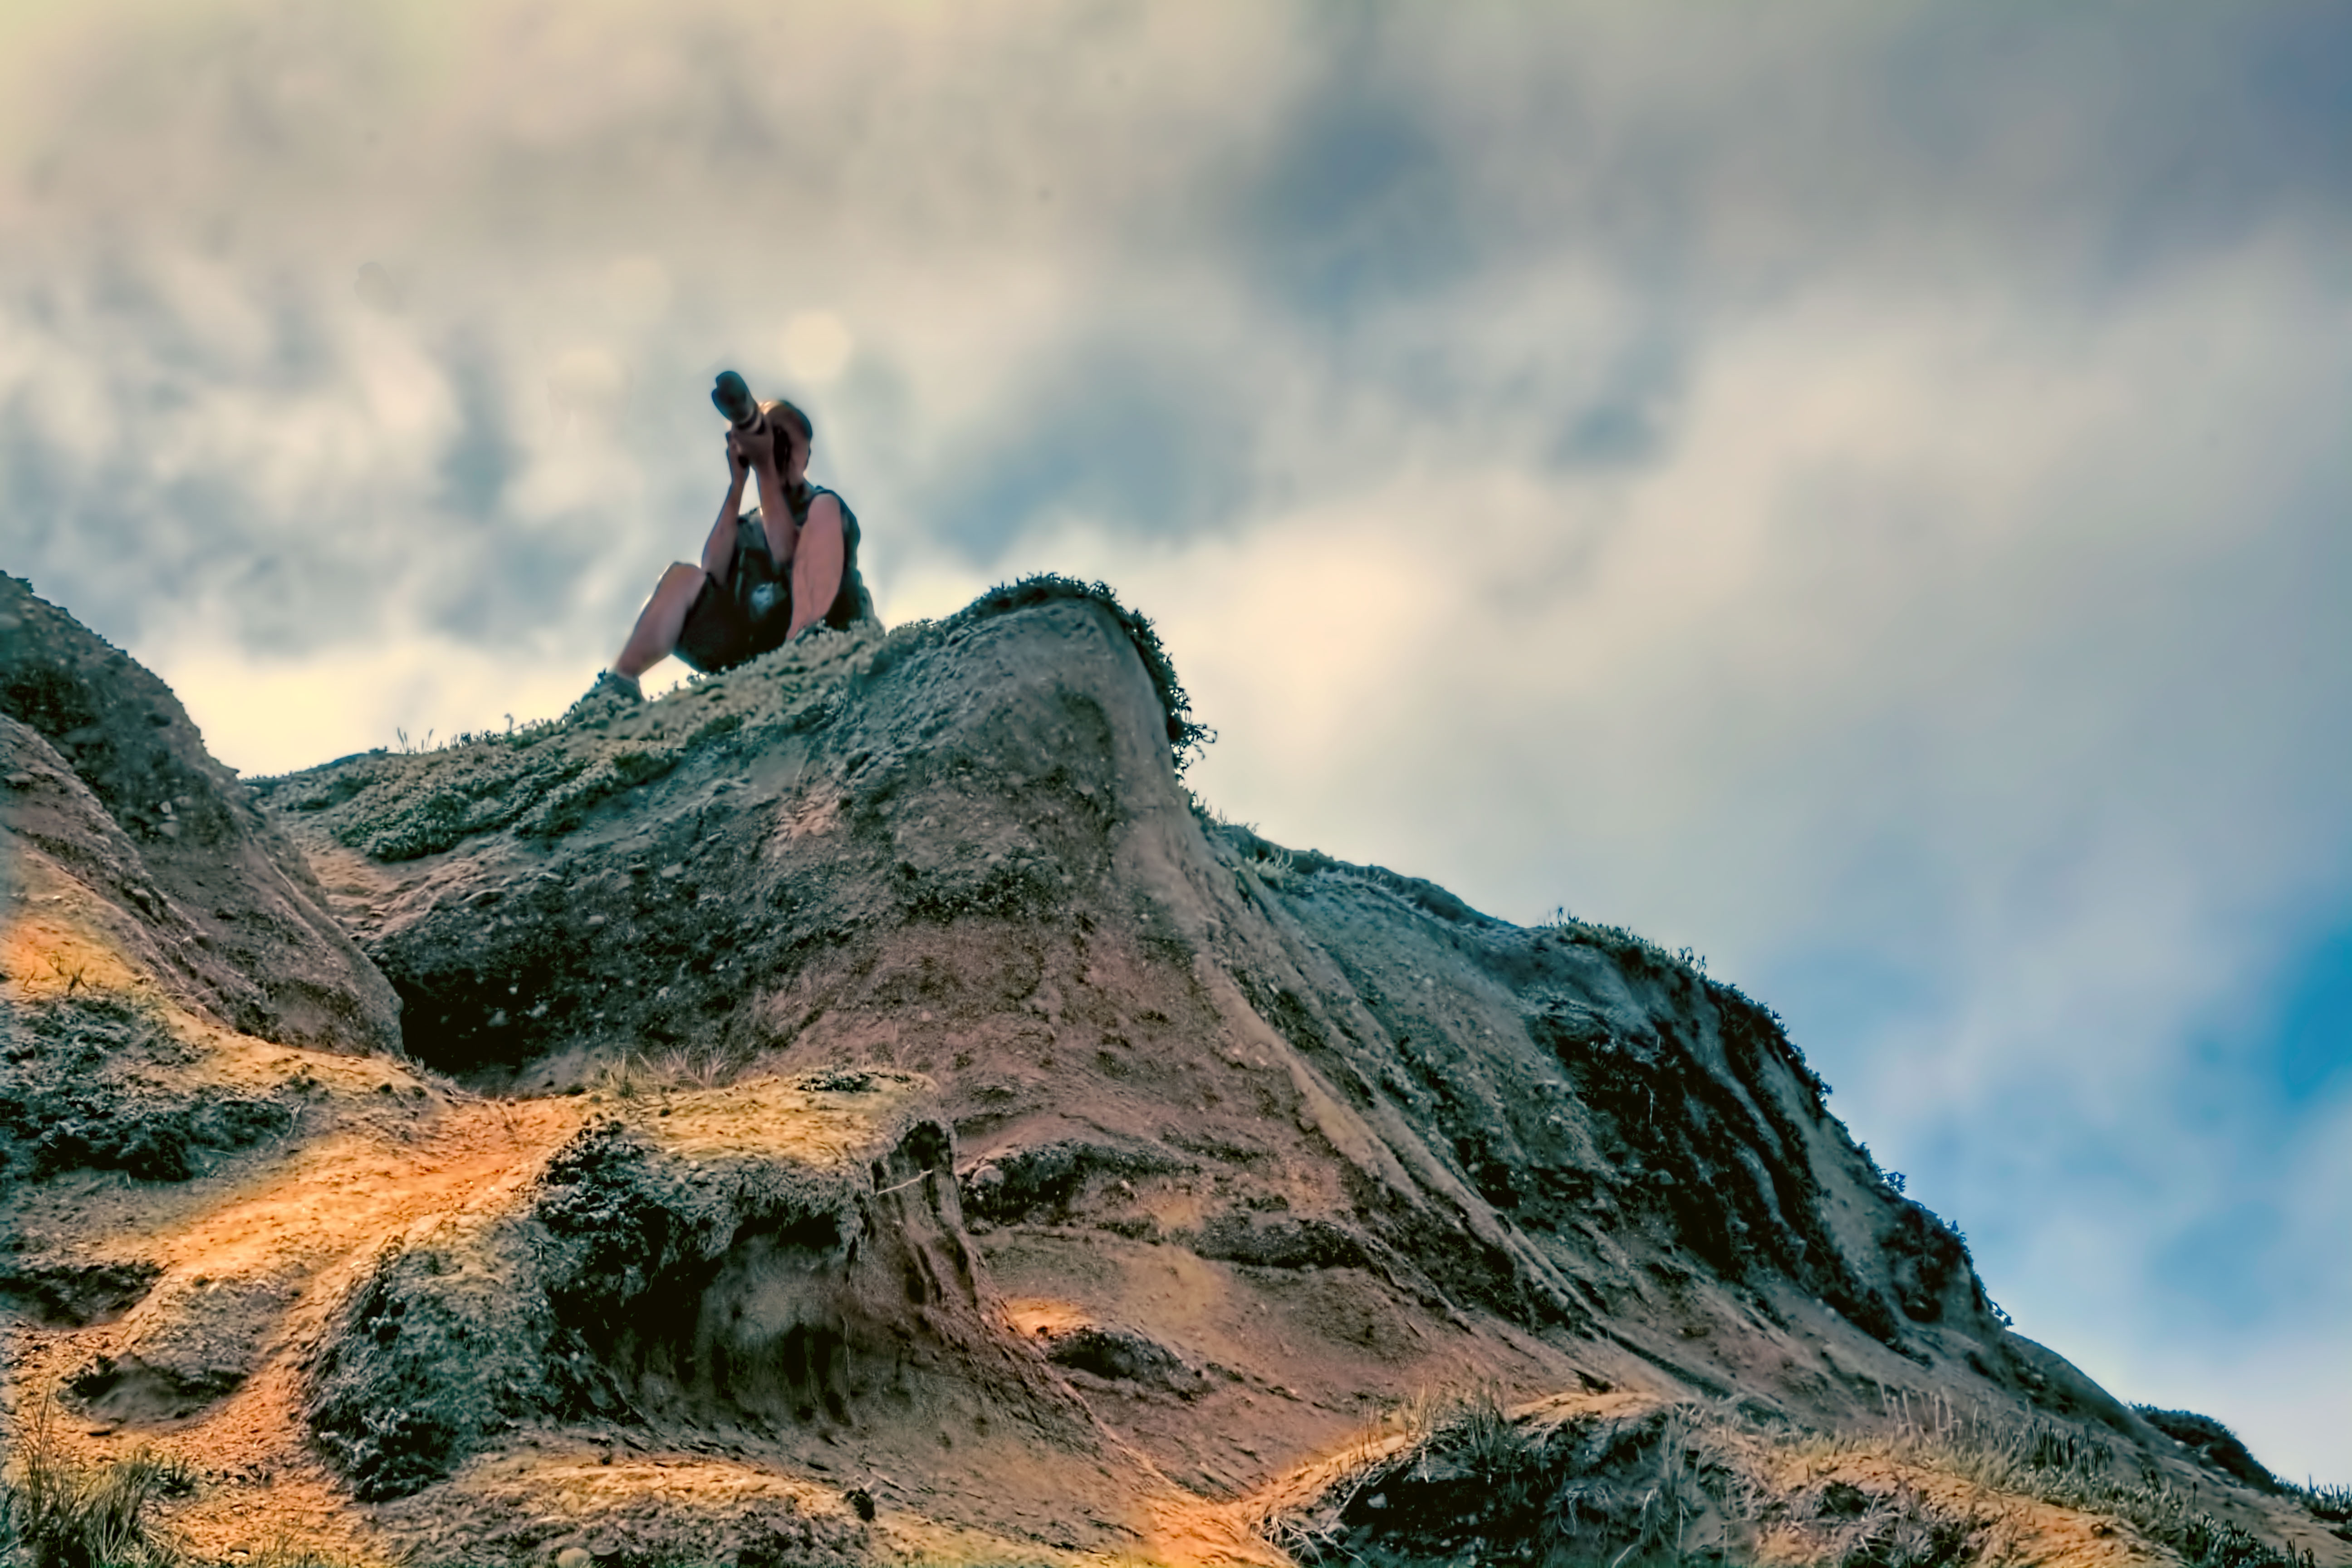 File:A photographer on top of a hill.jpg - Wikimedia Commons